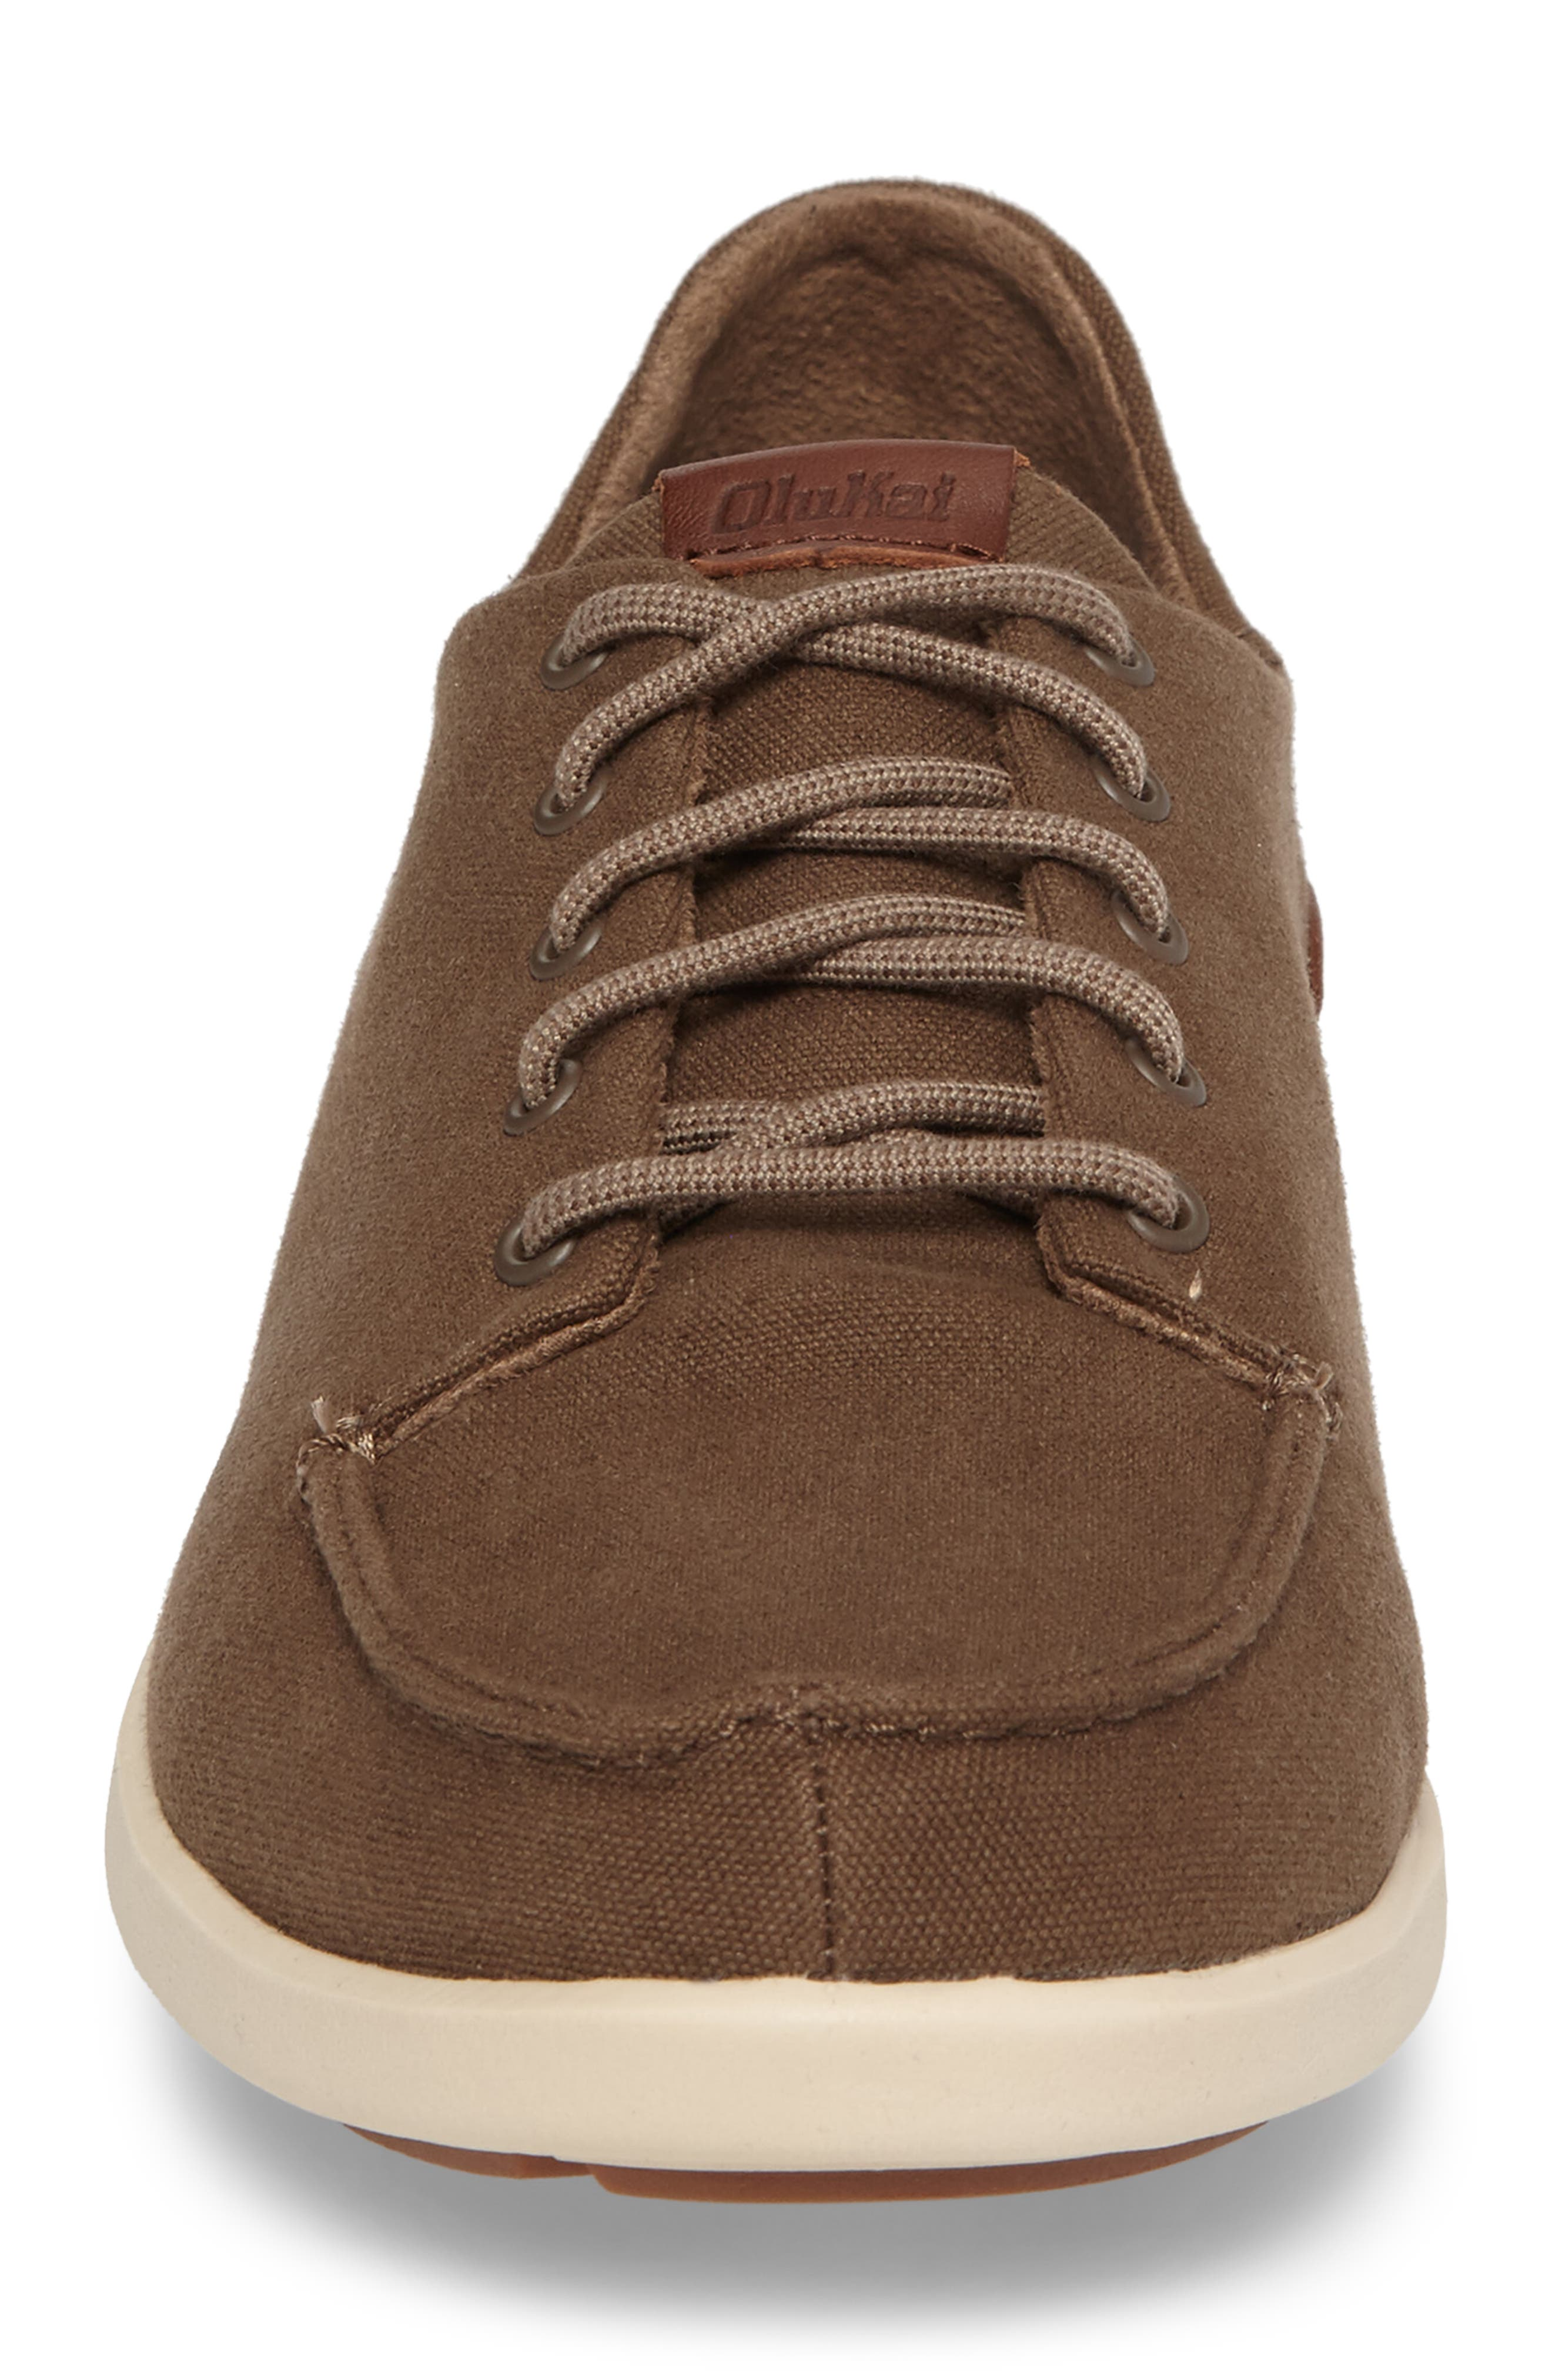 Manoa Sneaker,                             Alternate thumbnail 4, color,                             MUSTANG/ TOFFEE